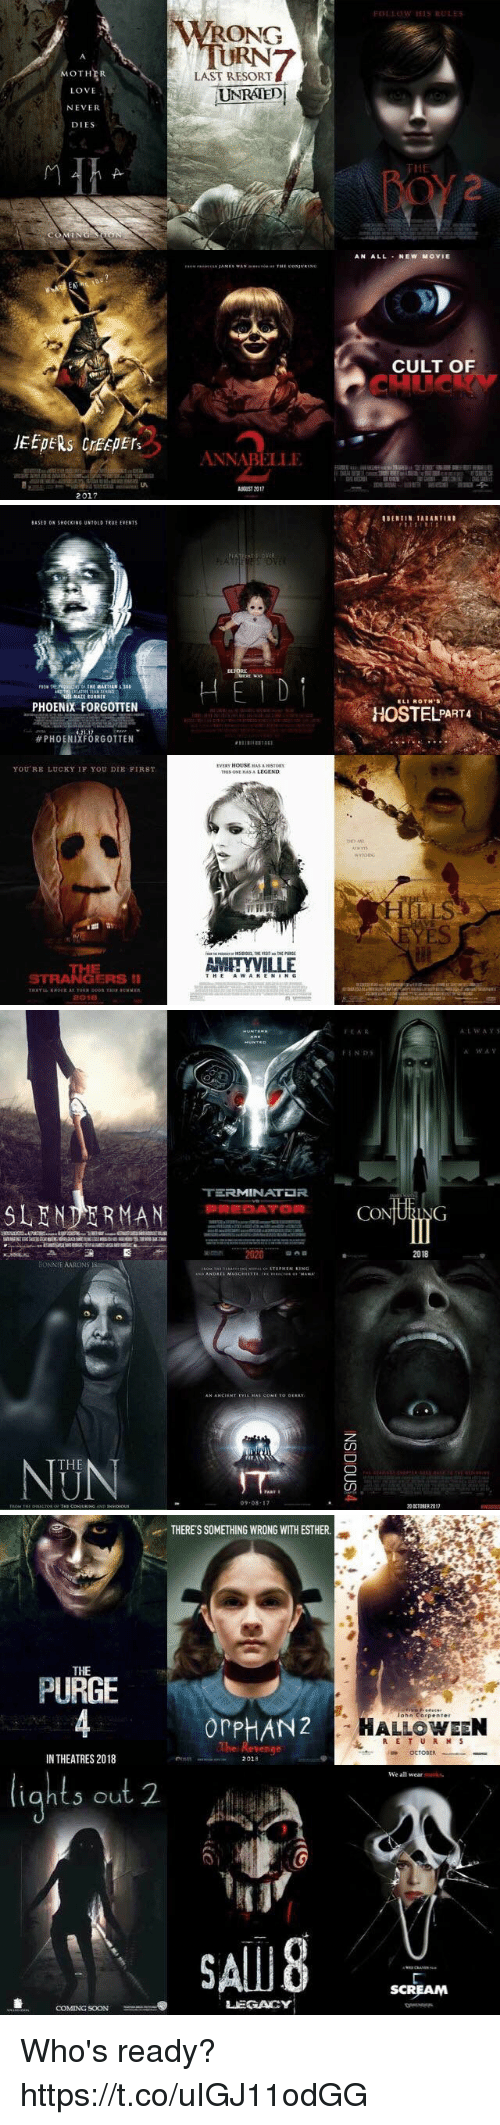 jeepers: MOTHER  LOVE  NEVER  DIES  JEEPERS creepers  2017  WRONG  LAST RESORT  UNRATED  ANNABELLE  FOLLOW HIS RULES  AN ALL NEW MOVIE  CULT OF   PHOENIX FORGOTTEN  PHOENIXFORGOTTEN  YOU RE LUCKY IF YOU DIE FIRST.  STRANGERS II  2001E  BEFORE  EVER HOUSE HASAHISTORY  AMITYVILLE  ROTH's  HOSTEL PART4   TERMINATDR  SLENDER MAN PREDATOR  2020  BONNIE AARONS  THE  09 08  It AR  CO  ING  20 CIOBER 2017  A:L w A v 5  A WAV   THERESSOMETHING WRONG WITH ESTHER.  THE  PURGE  or PHANZ  IN THEATRES 2018  2018  S out 2.  LEGACY  COMING SOON  John Corp enter  HALLOWEEN  R E T U R N S  OCTODER  We all wear  SCREAM Who's ready? https://t.co/uIGJ11odGG